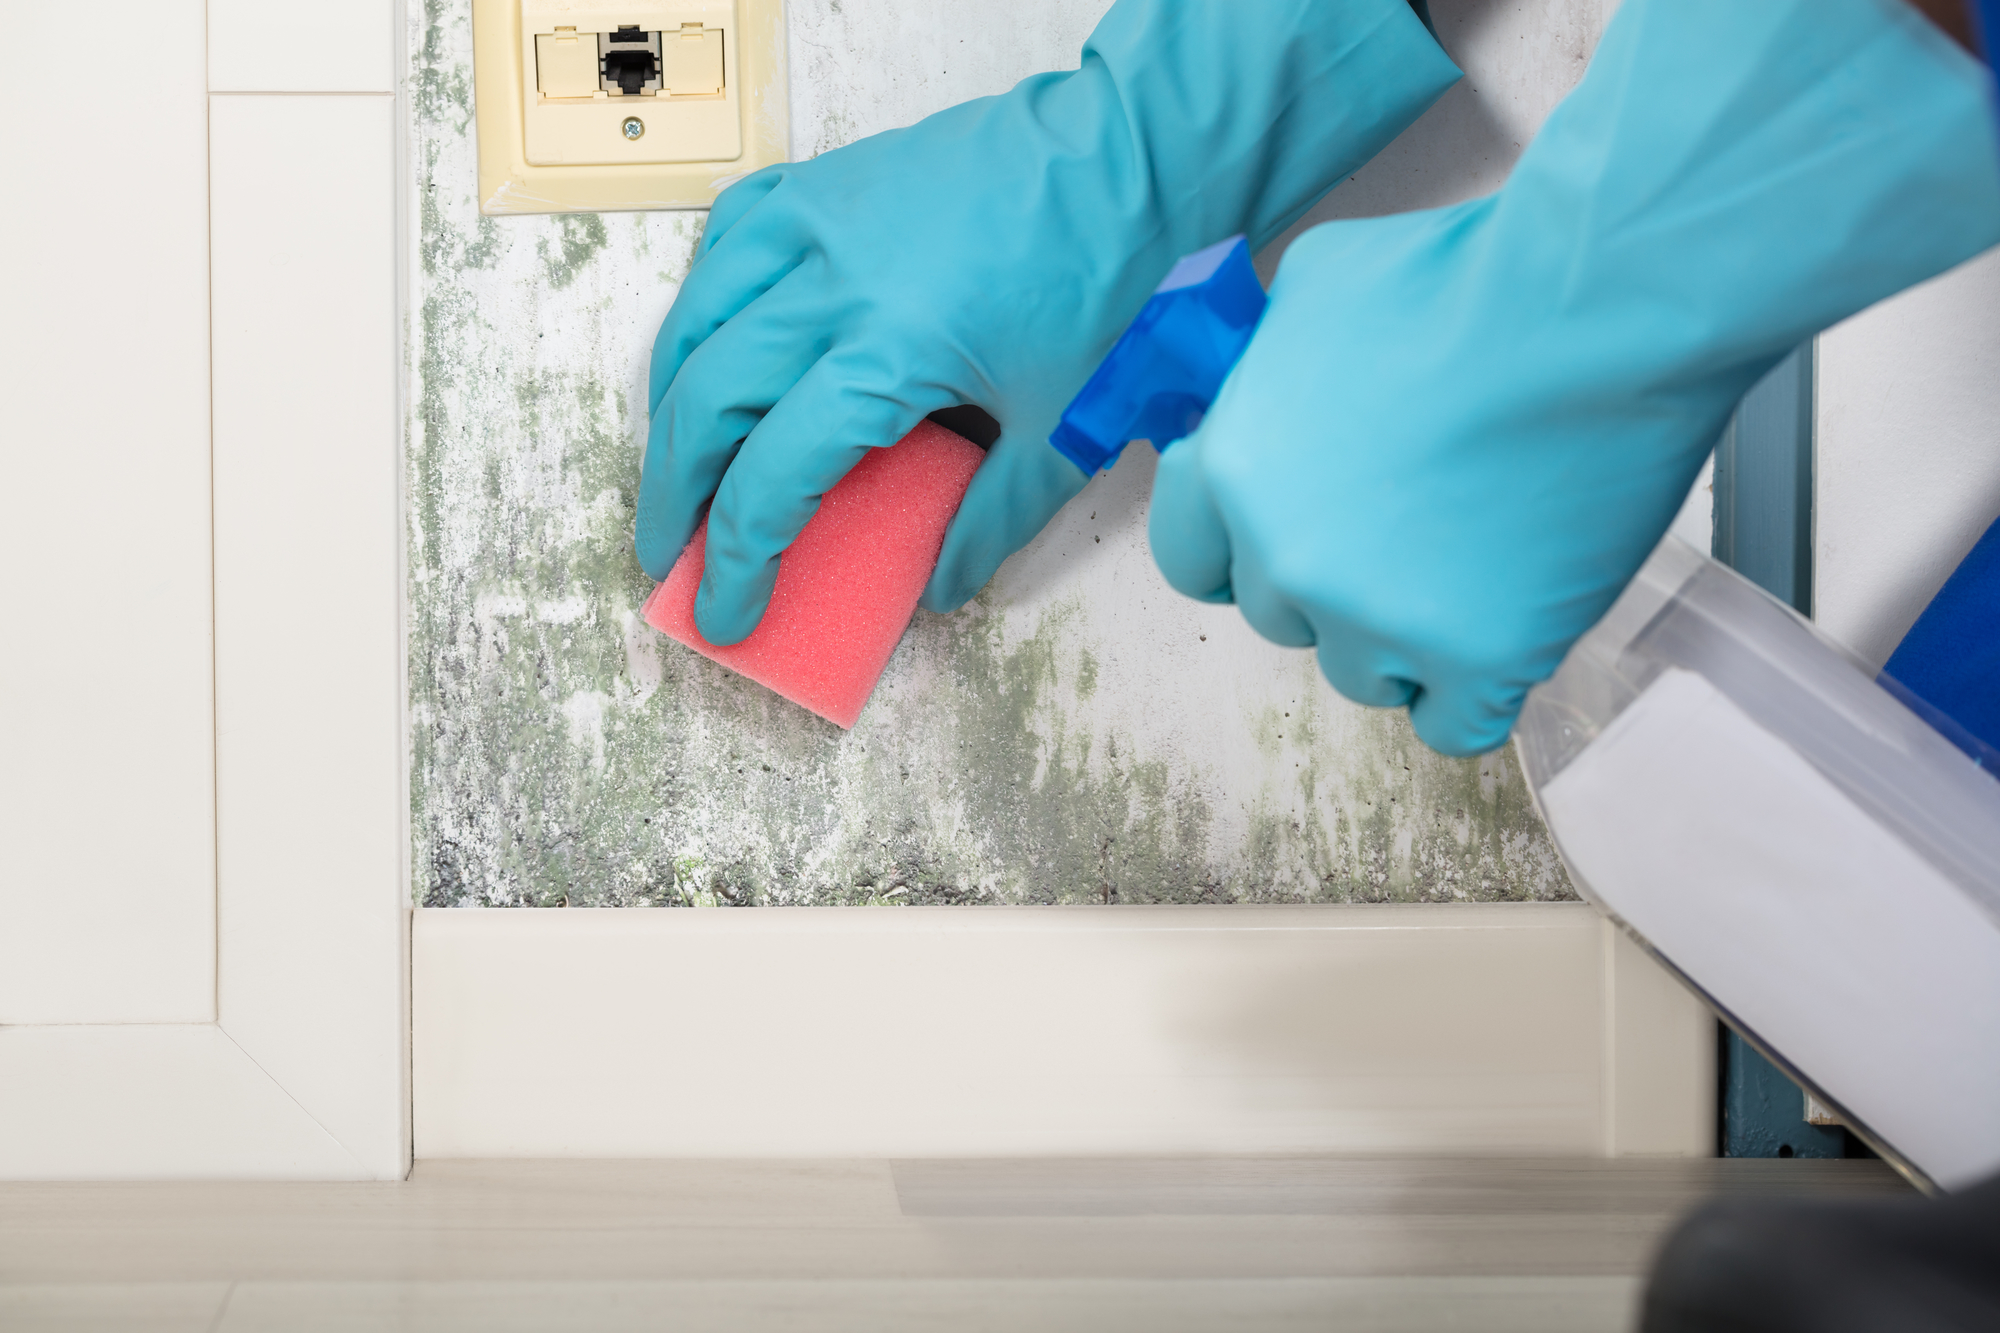 A PROFESSIONAL MOLD REMOVAL SERVICE IS A GOOD INVESTMENT AND THE BEST WAY TO PROTECT ALL KINDS OF PROPERTIES